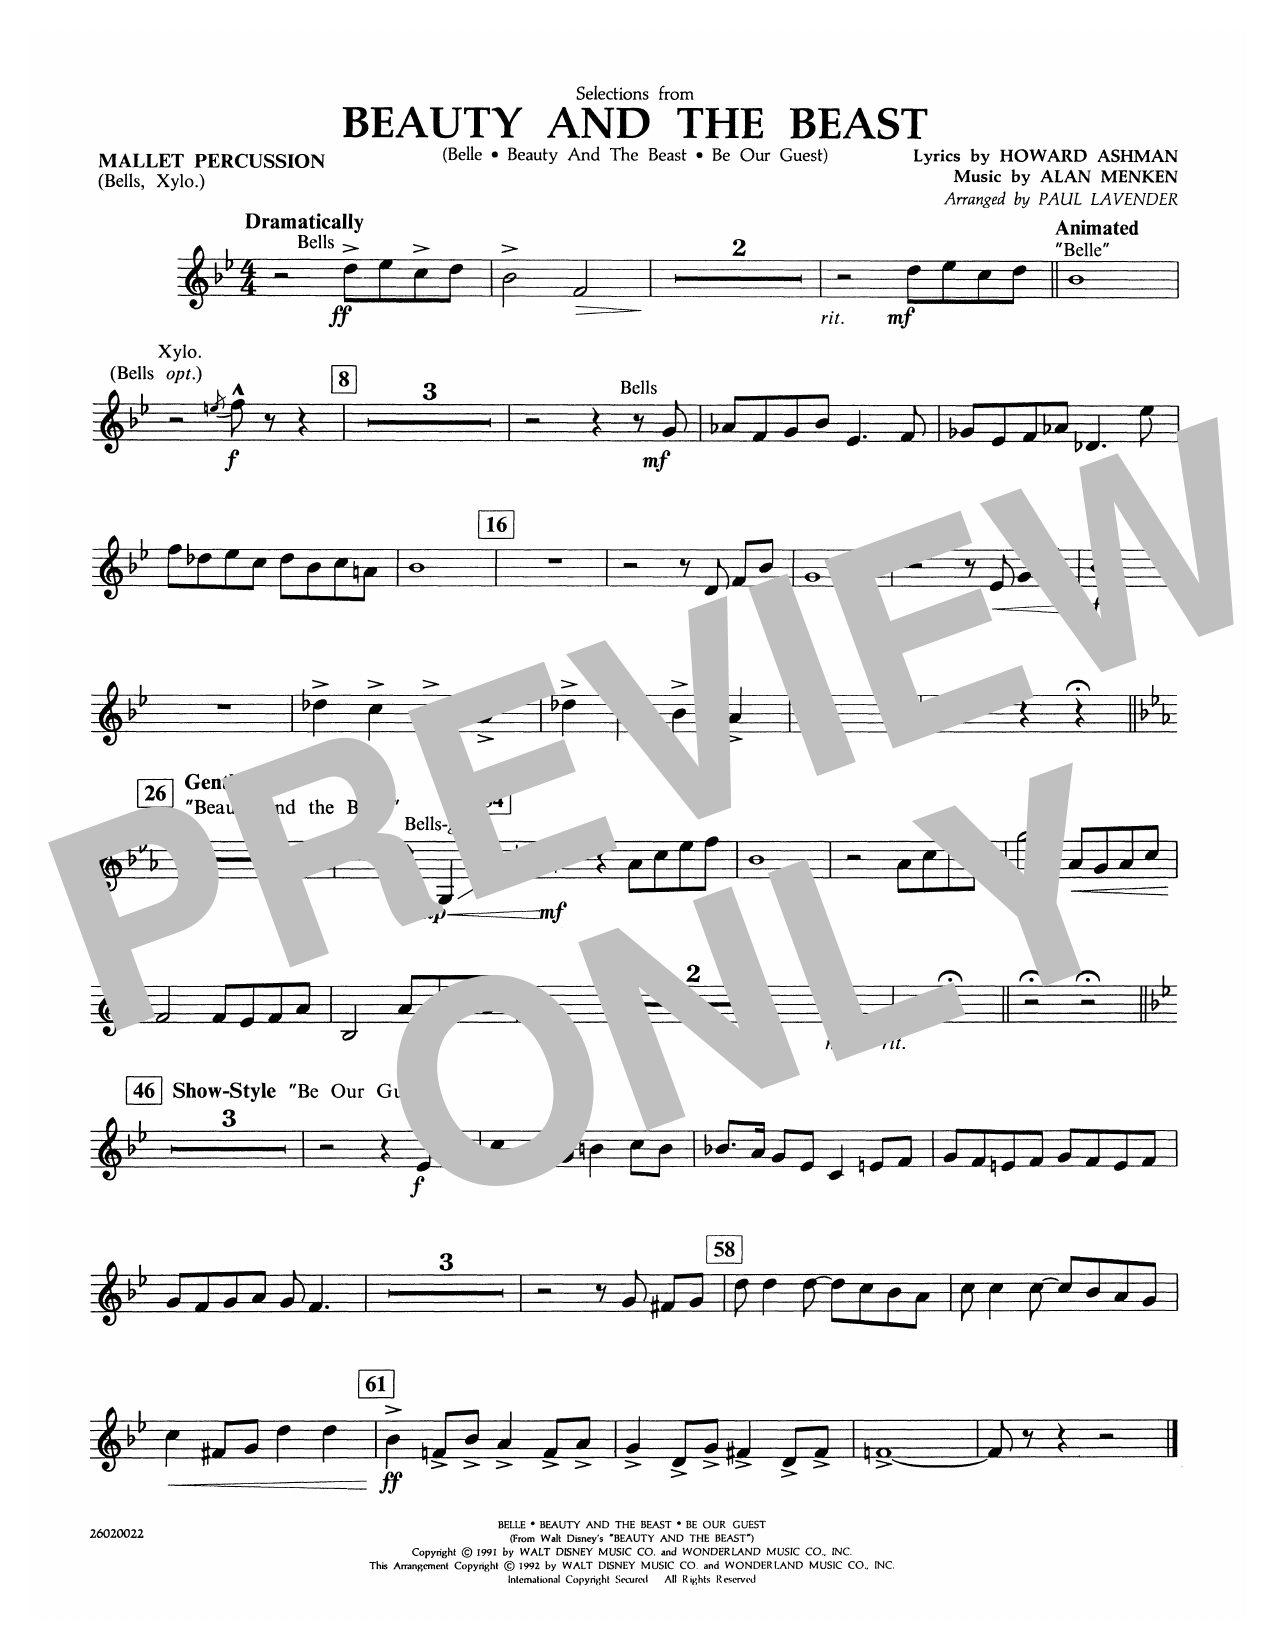 Selections from Beauty and the Beast - Mallet Percussion Sheet Music